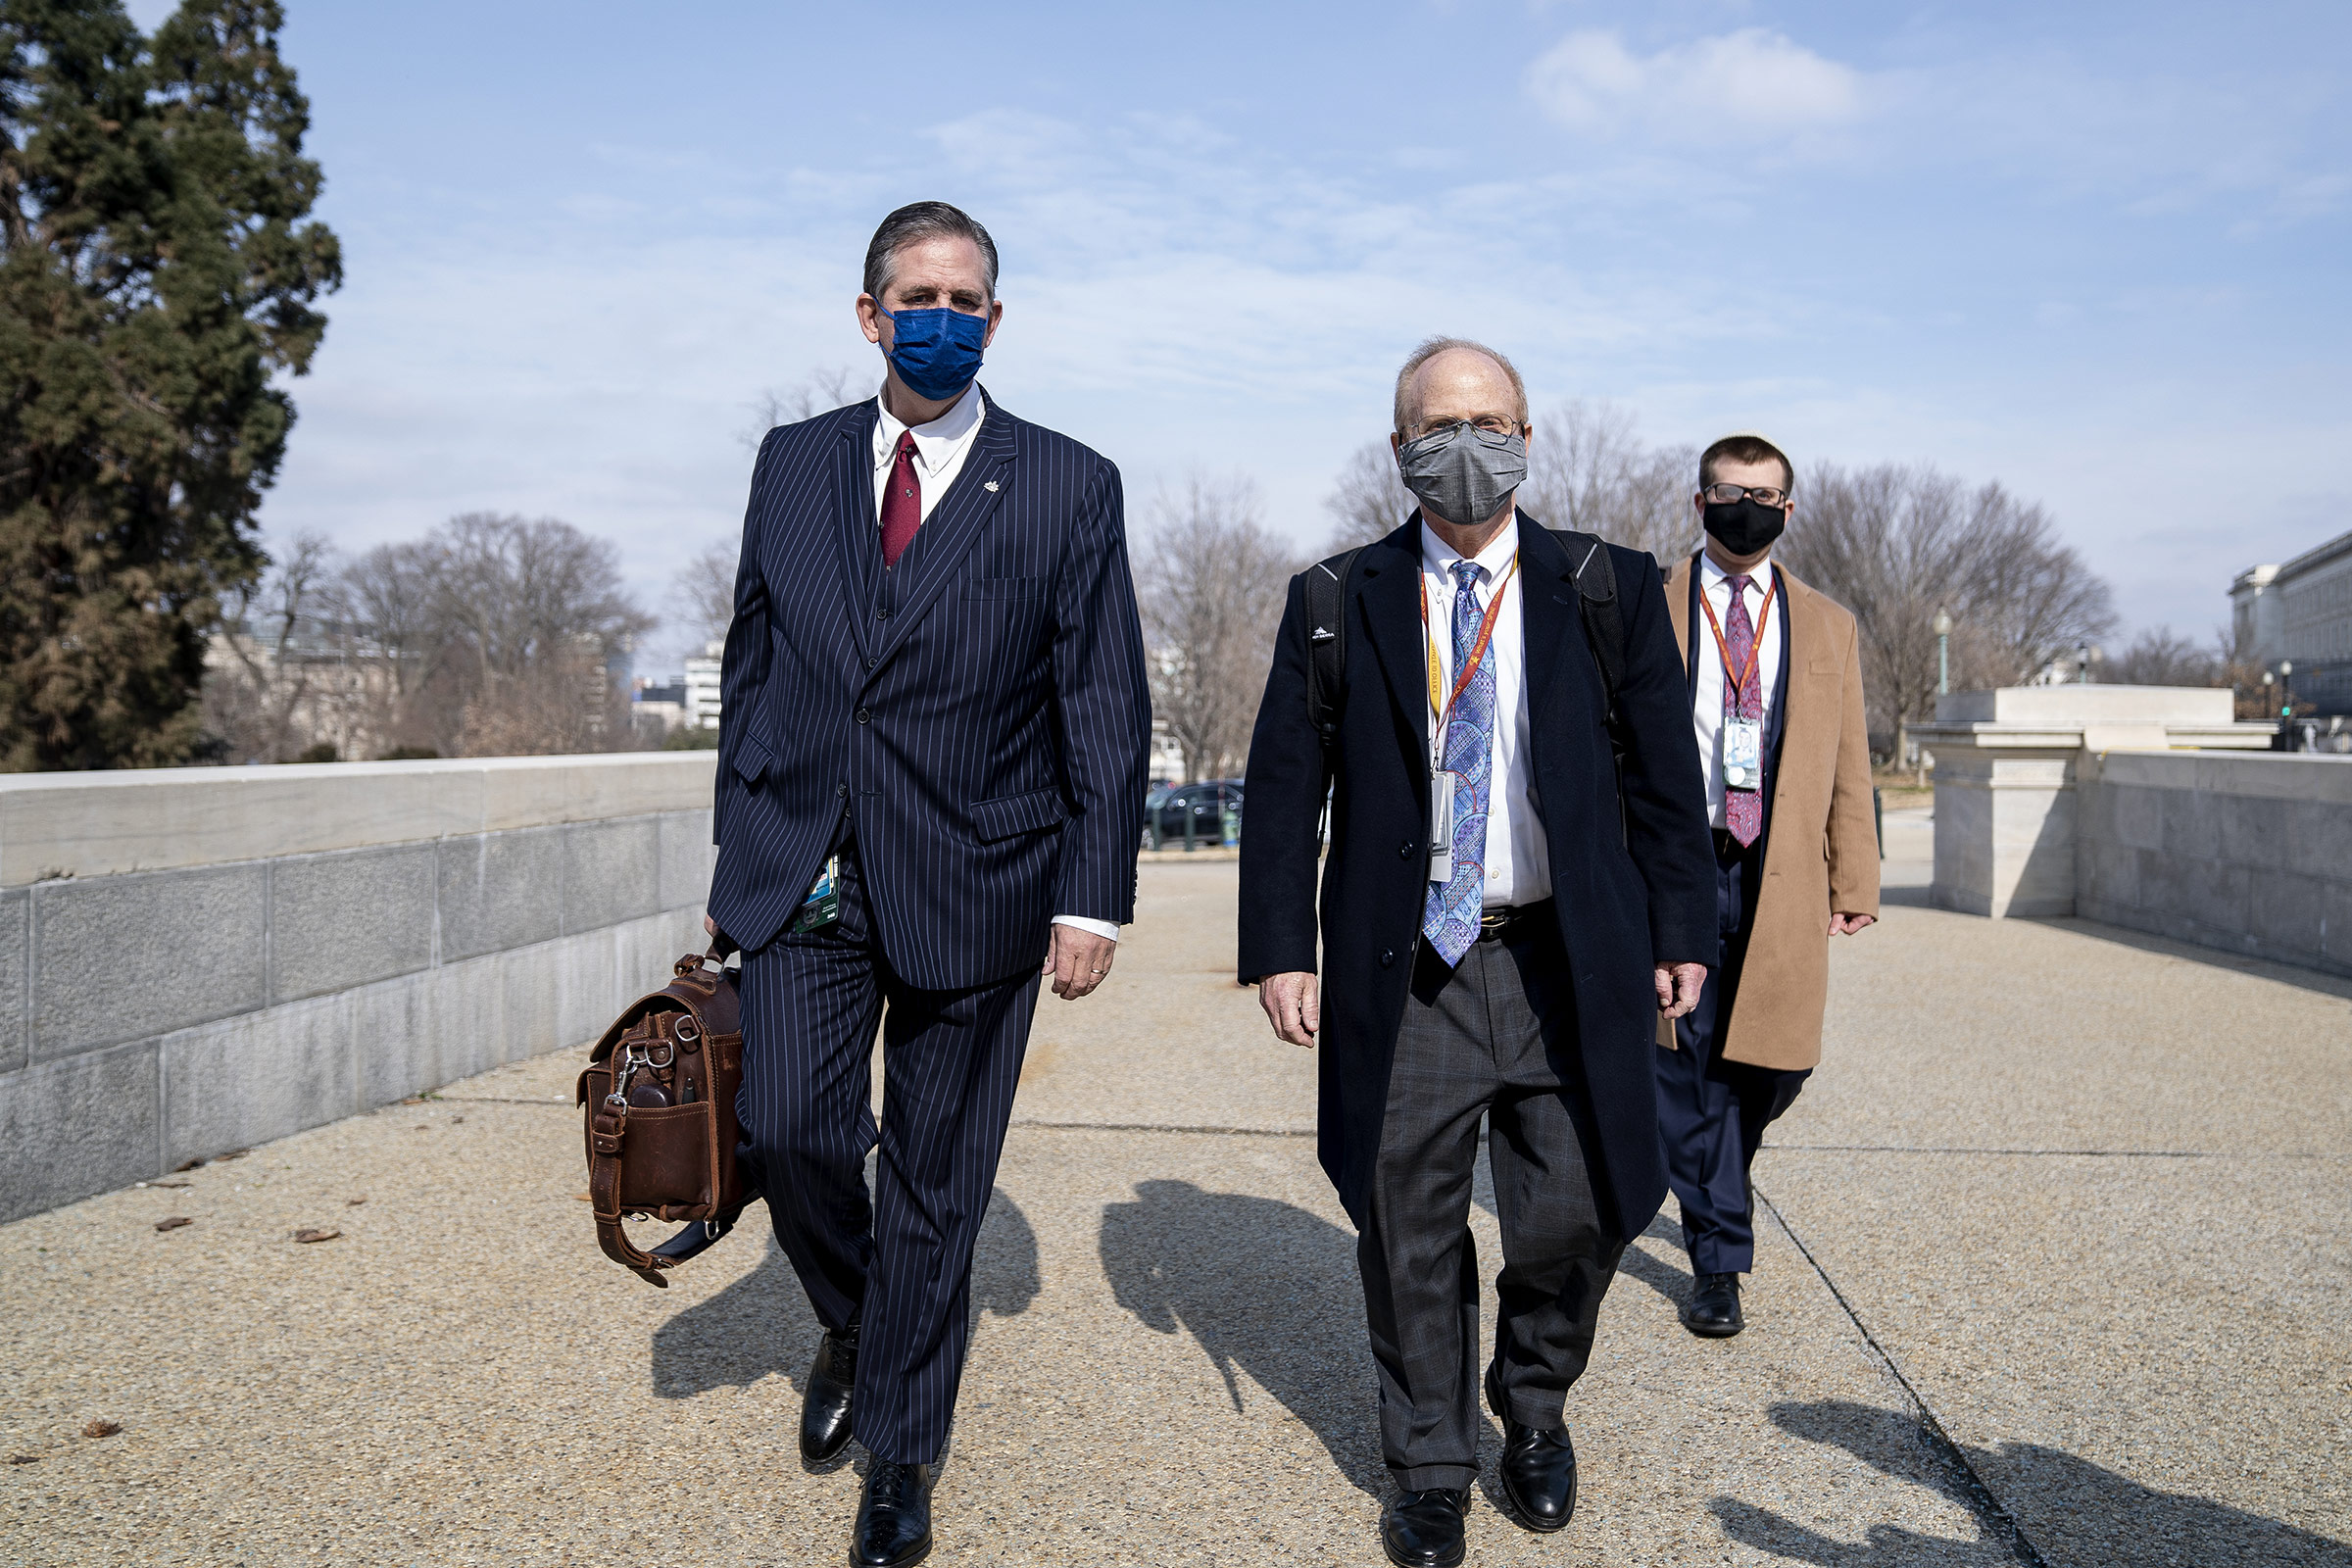 Defense attorneys for Donald Trump, Bruce Castor and David Schoen arrive at the Capitol in Washington, DC, on February 10.